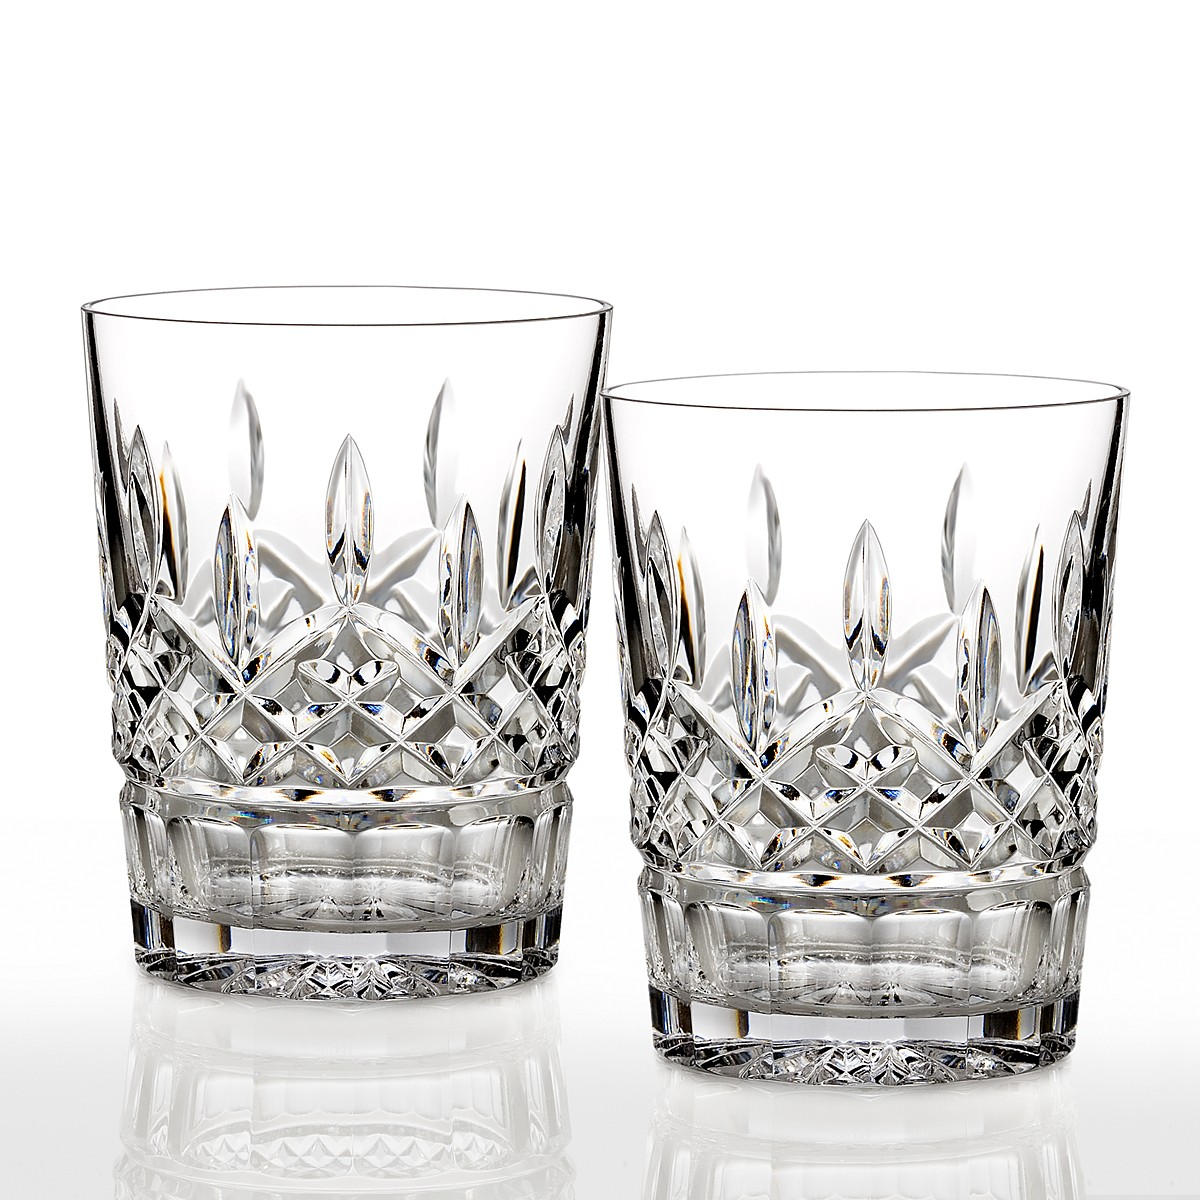 Double Old Fashioned Gles Crystal Libaifoundation Image Fashion